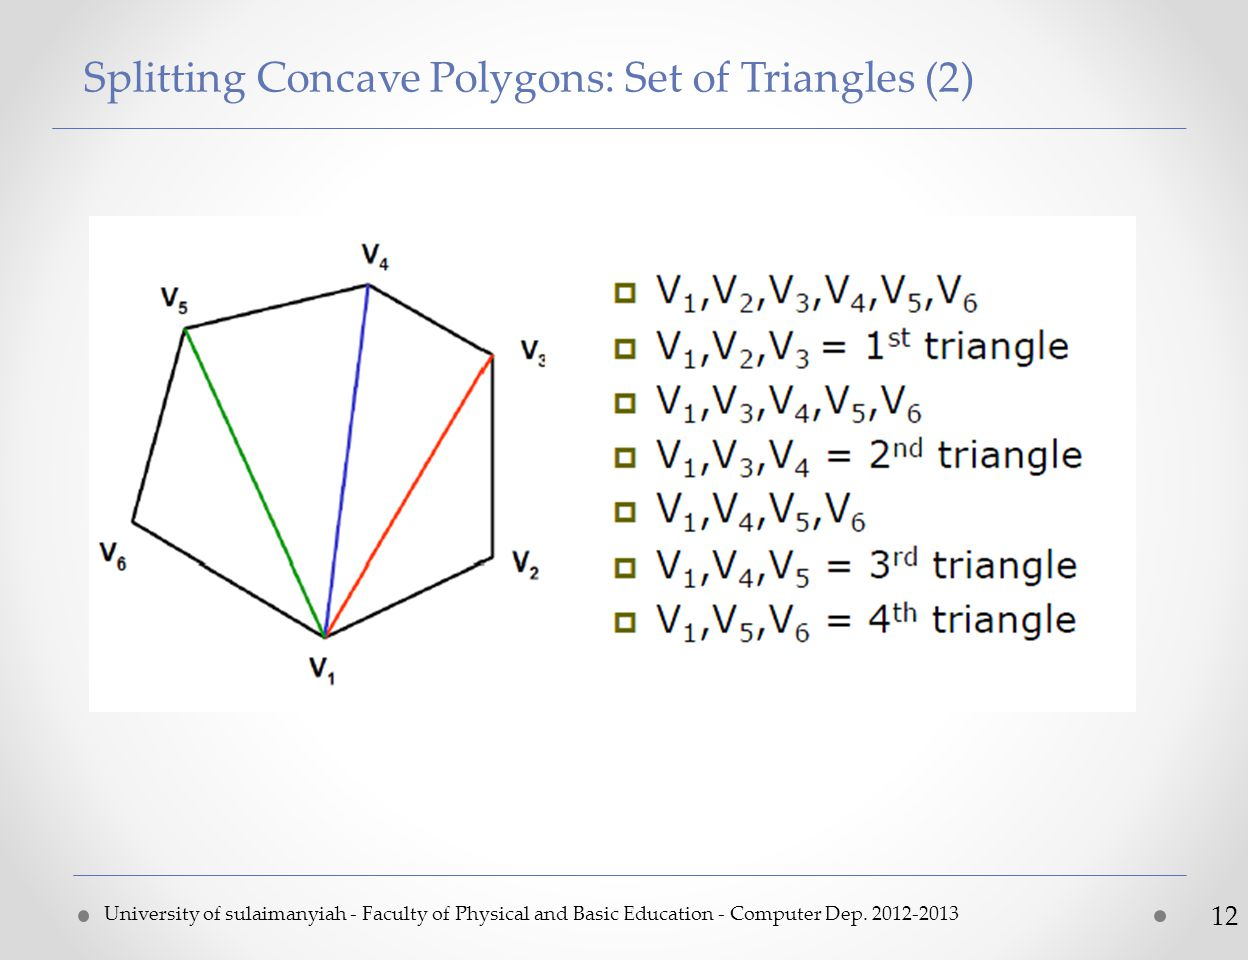 Splitting Concave Polygons: Set of Triangles (2) University of sulaimanyiah - Faculty of Physical and Basic Education - Computer Dep. 2012-2013 12